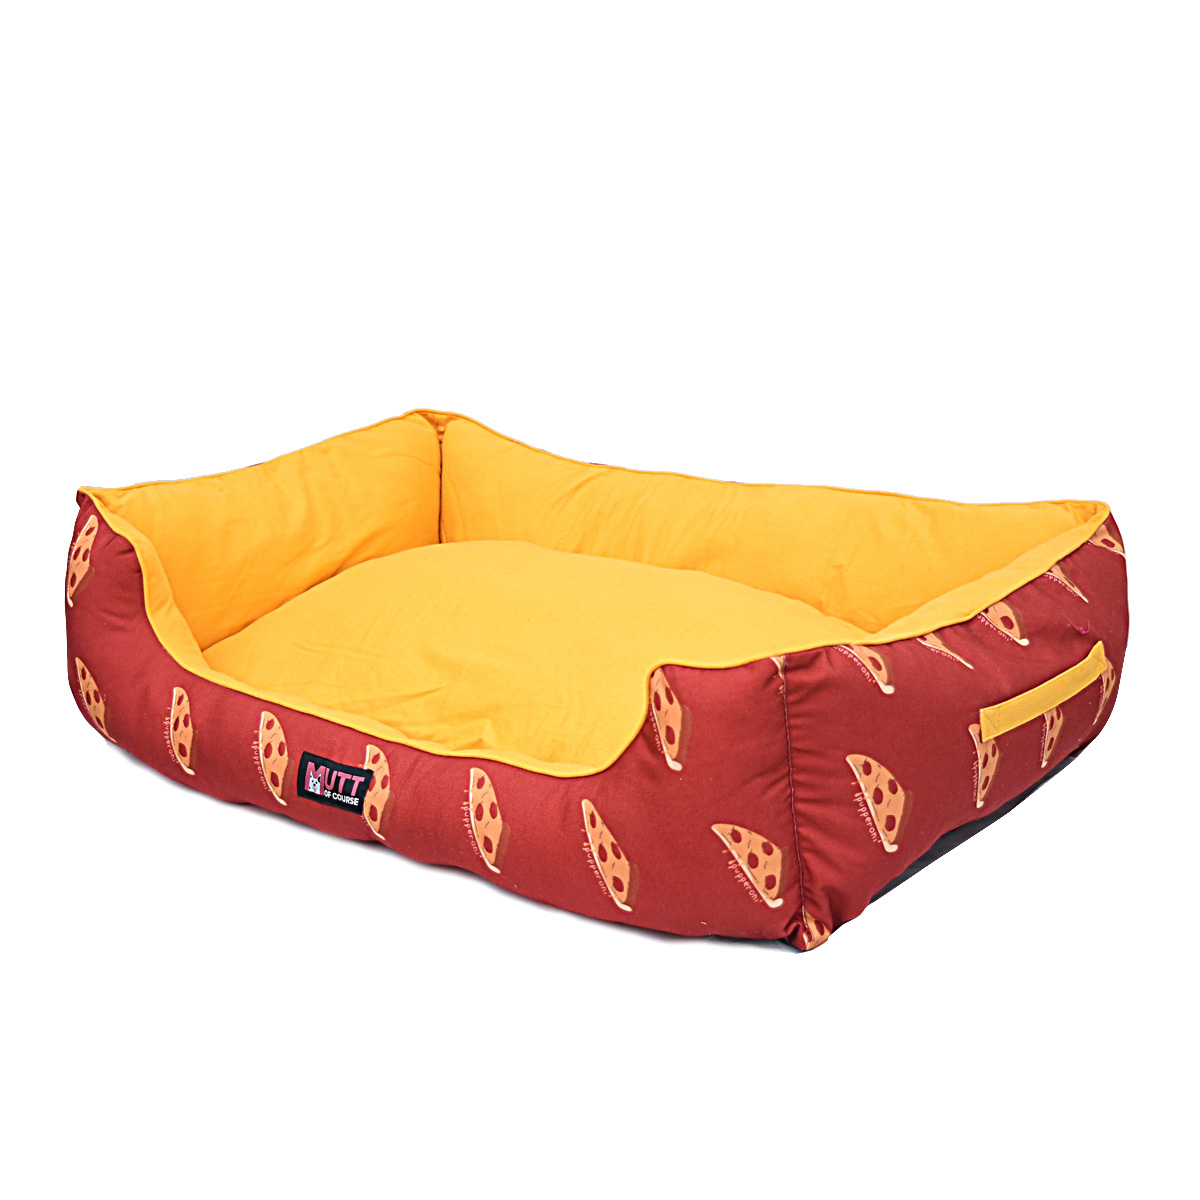 Mutt Of Course Lounger Bed For Dogs - Pupperoni Pizza - Xlarge